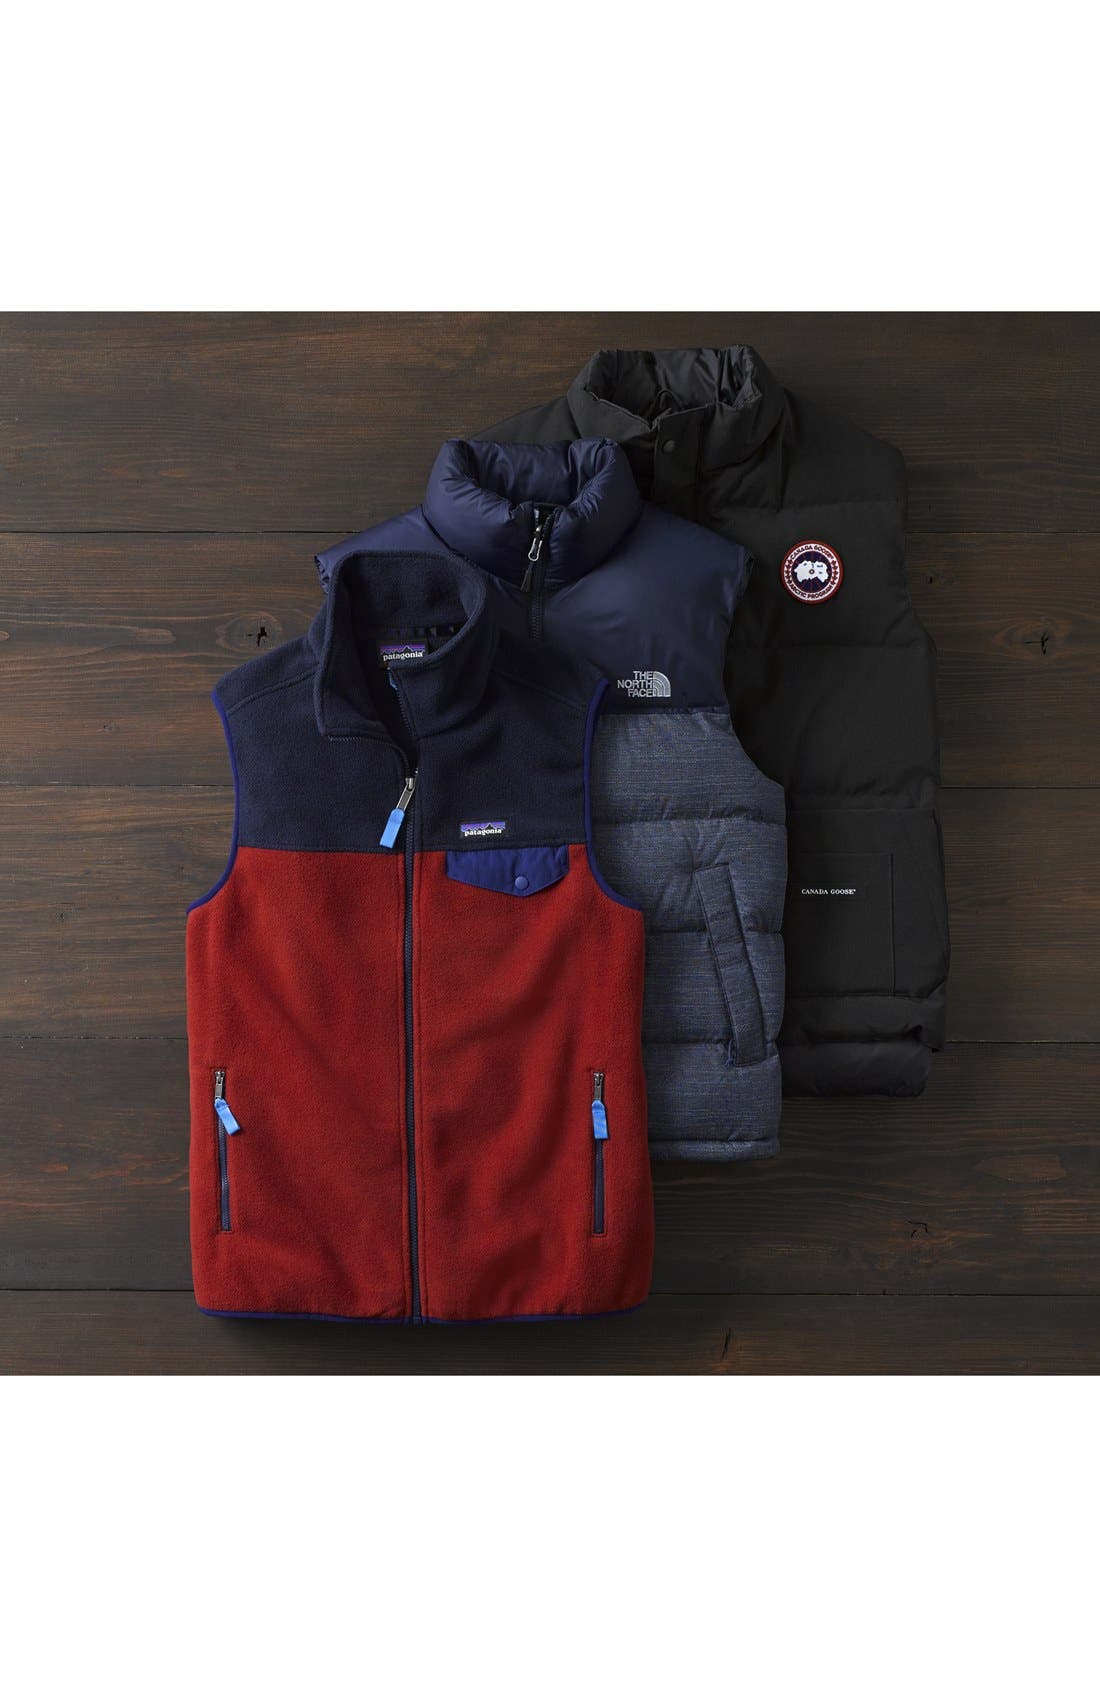 PATAGONIA,                             Synchilla<sup>®</sup>Snap-T<sup>®</sup> Zip FleeceVest,                             Alternate thumbnail 8, color,                             201